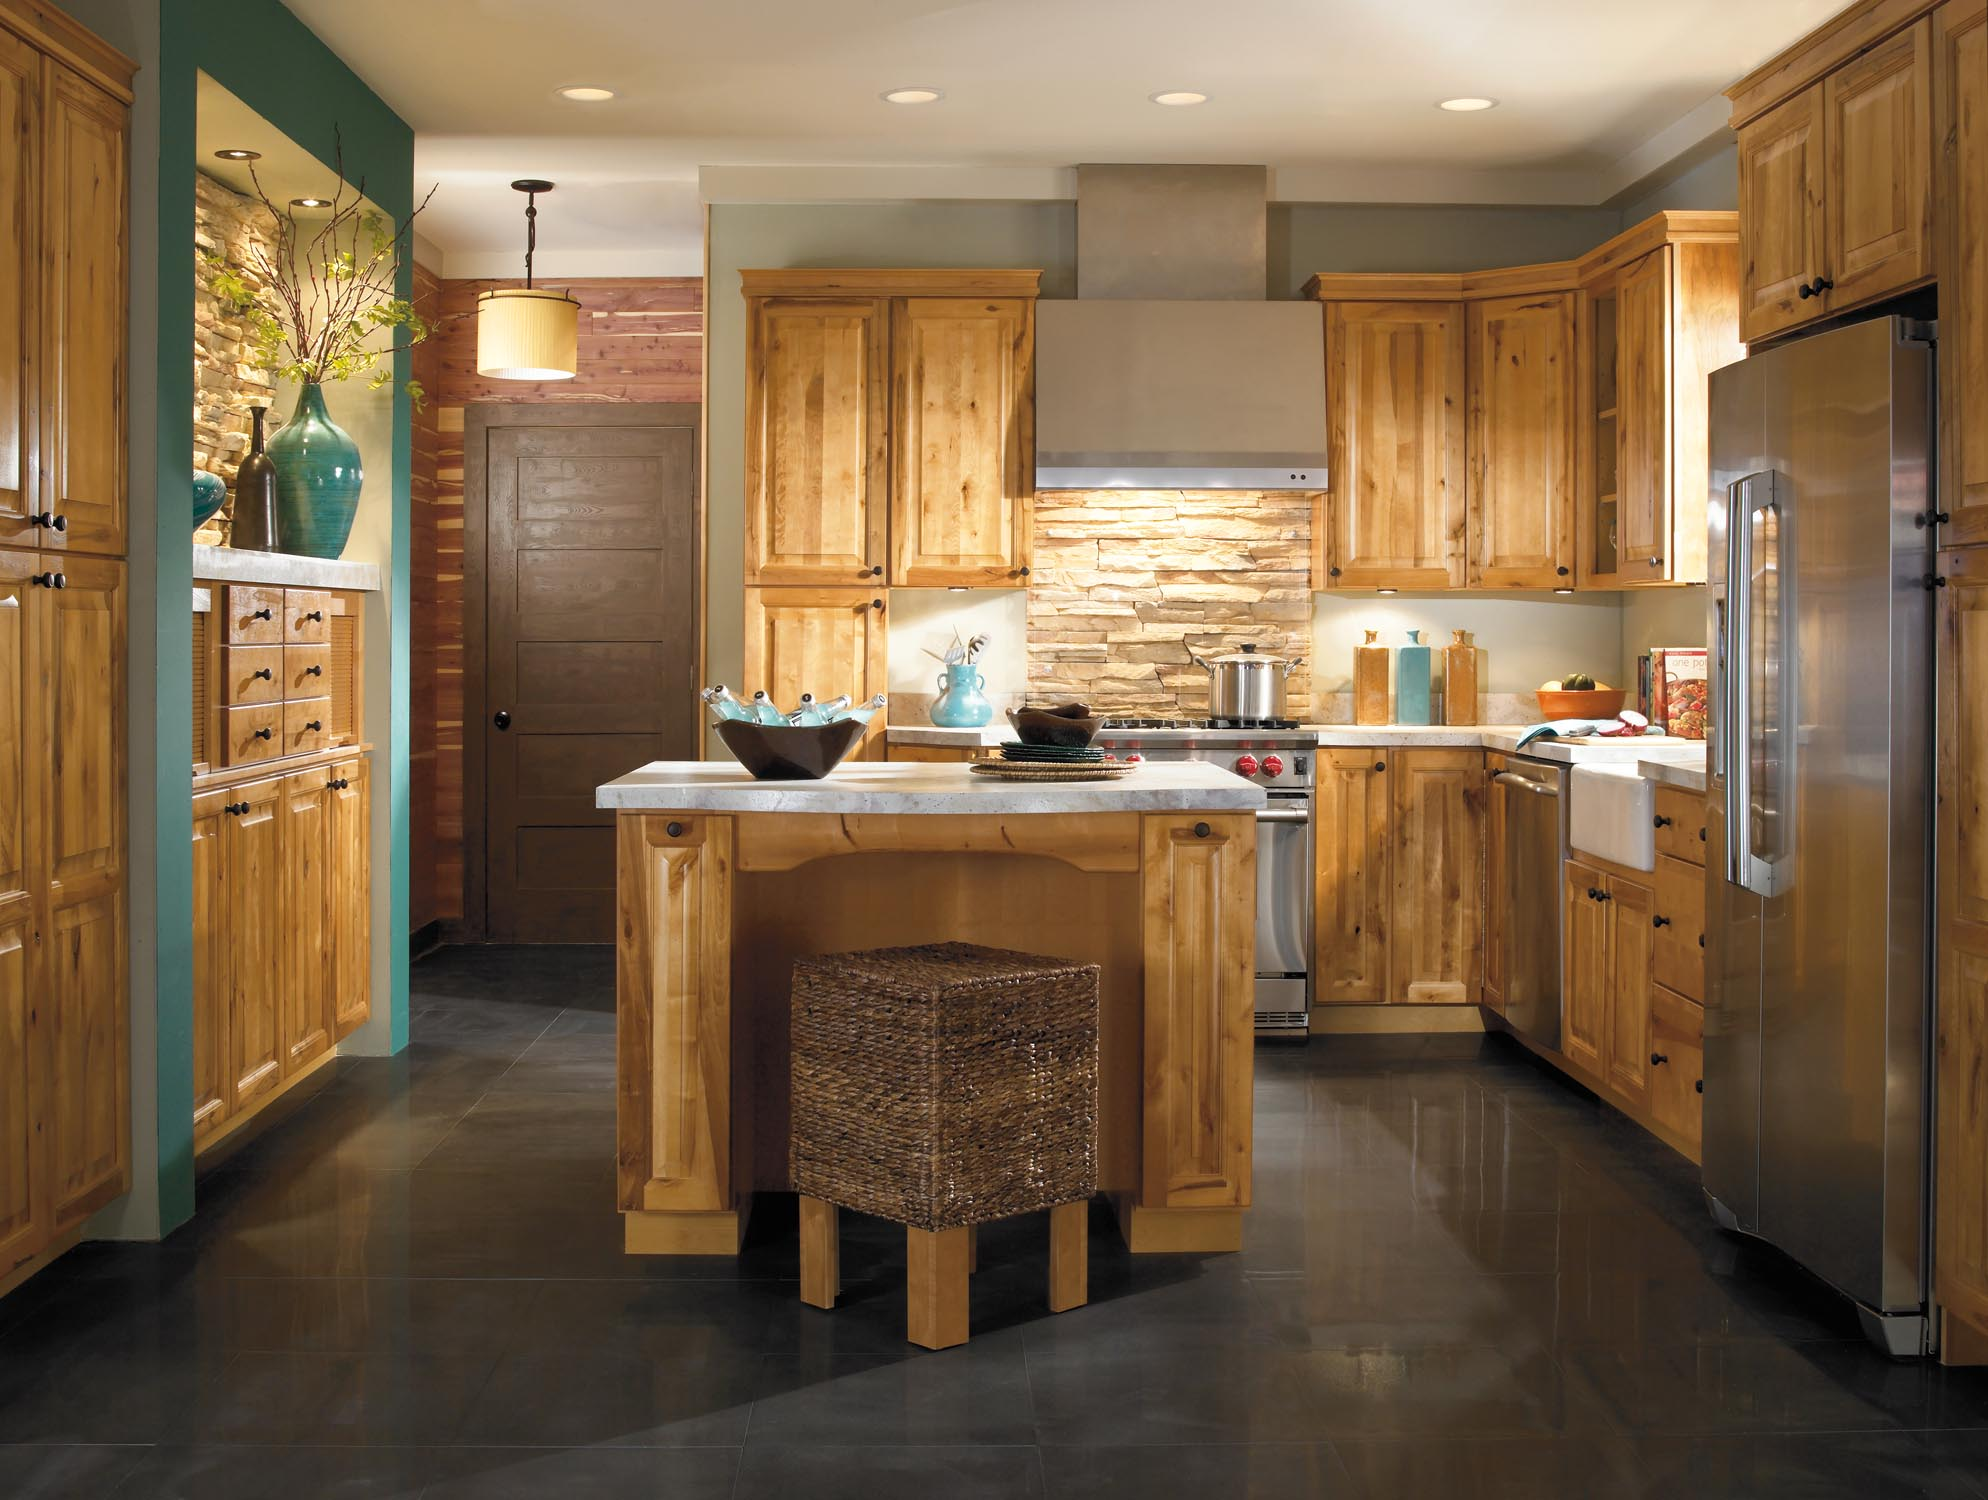 Florida Kitchen And Bath Cabinets And Countertops Hammond Kitchen